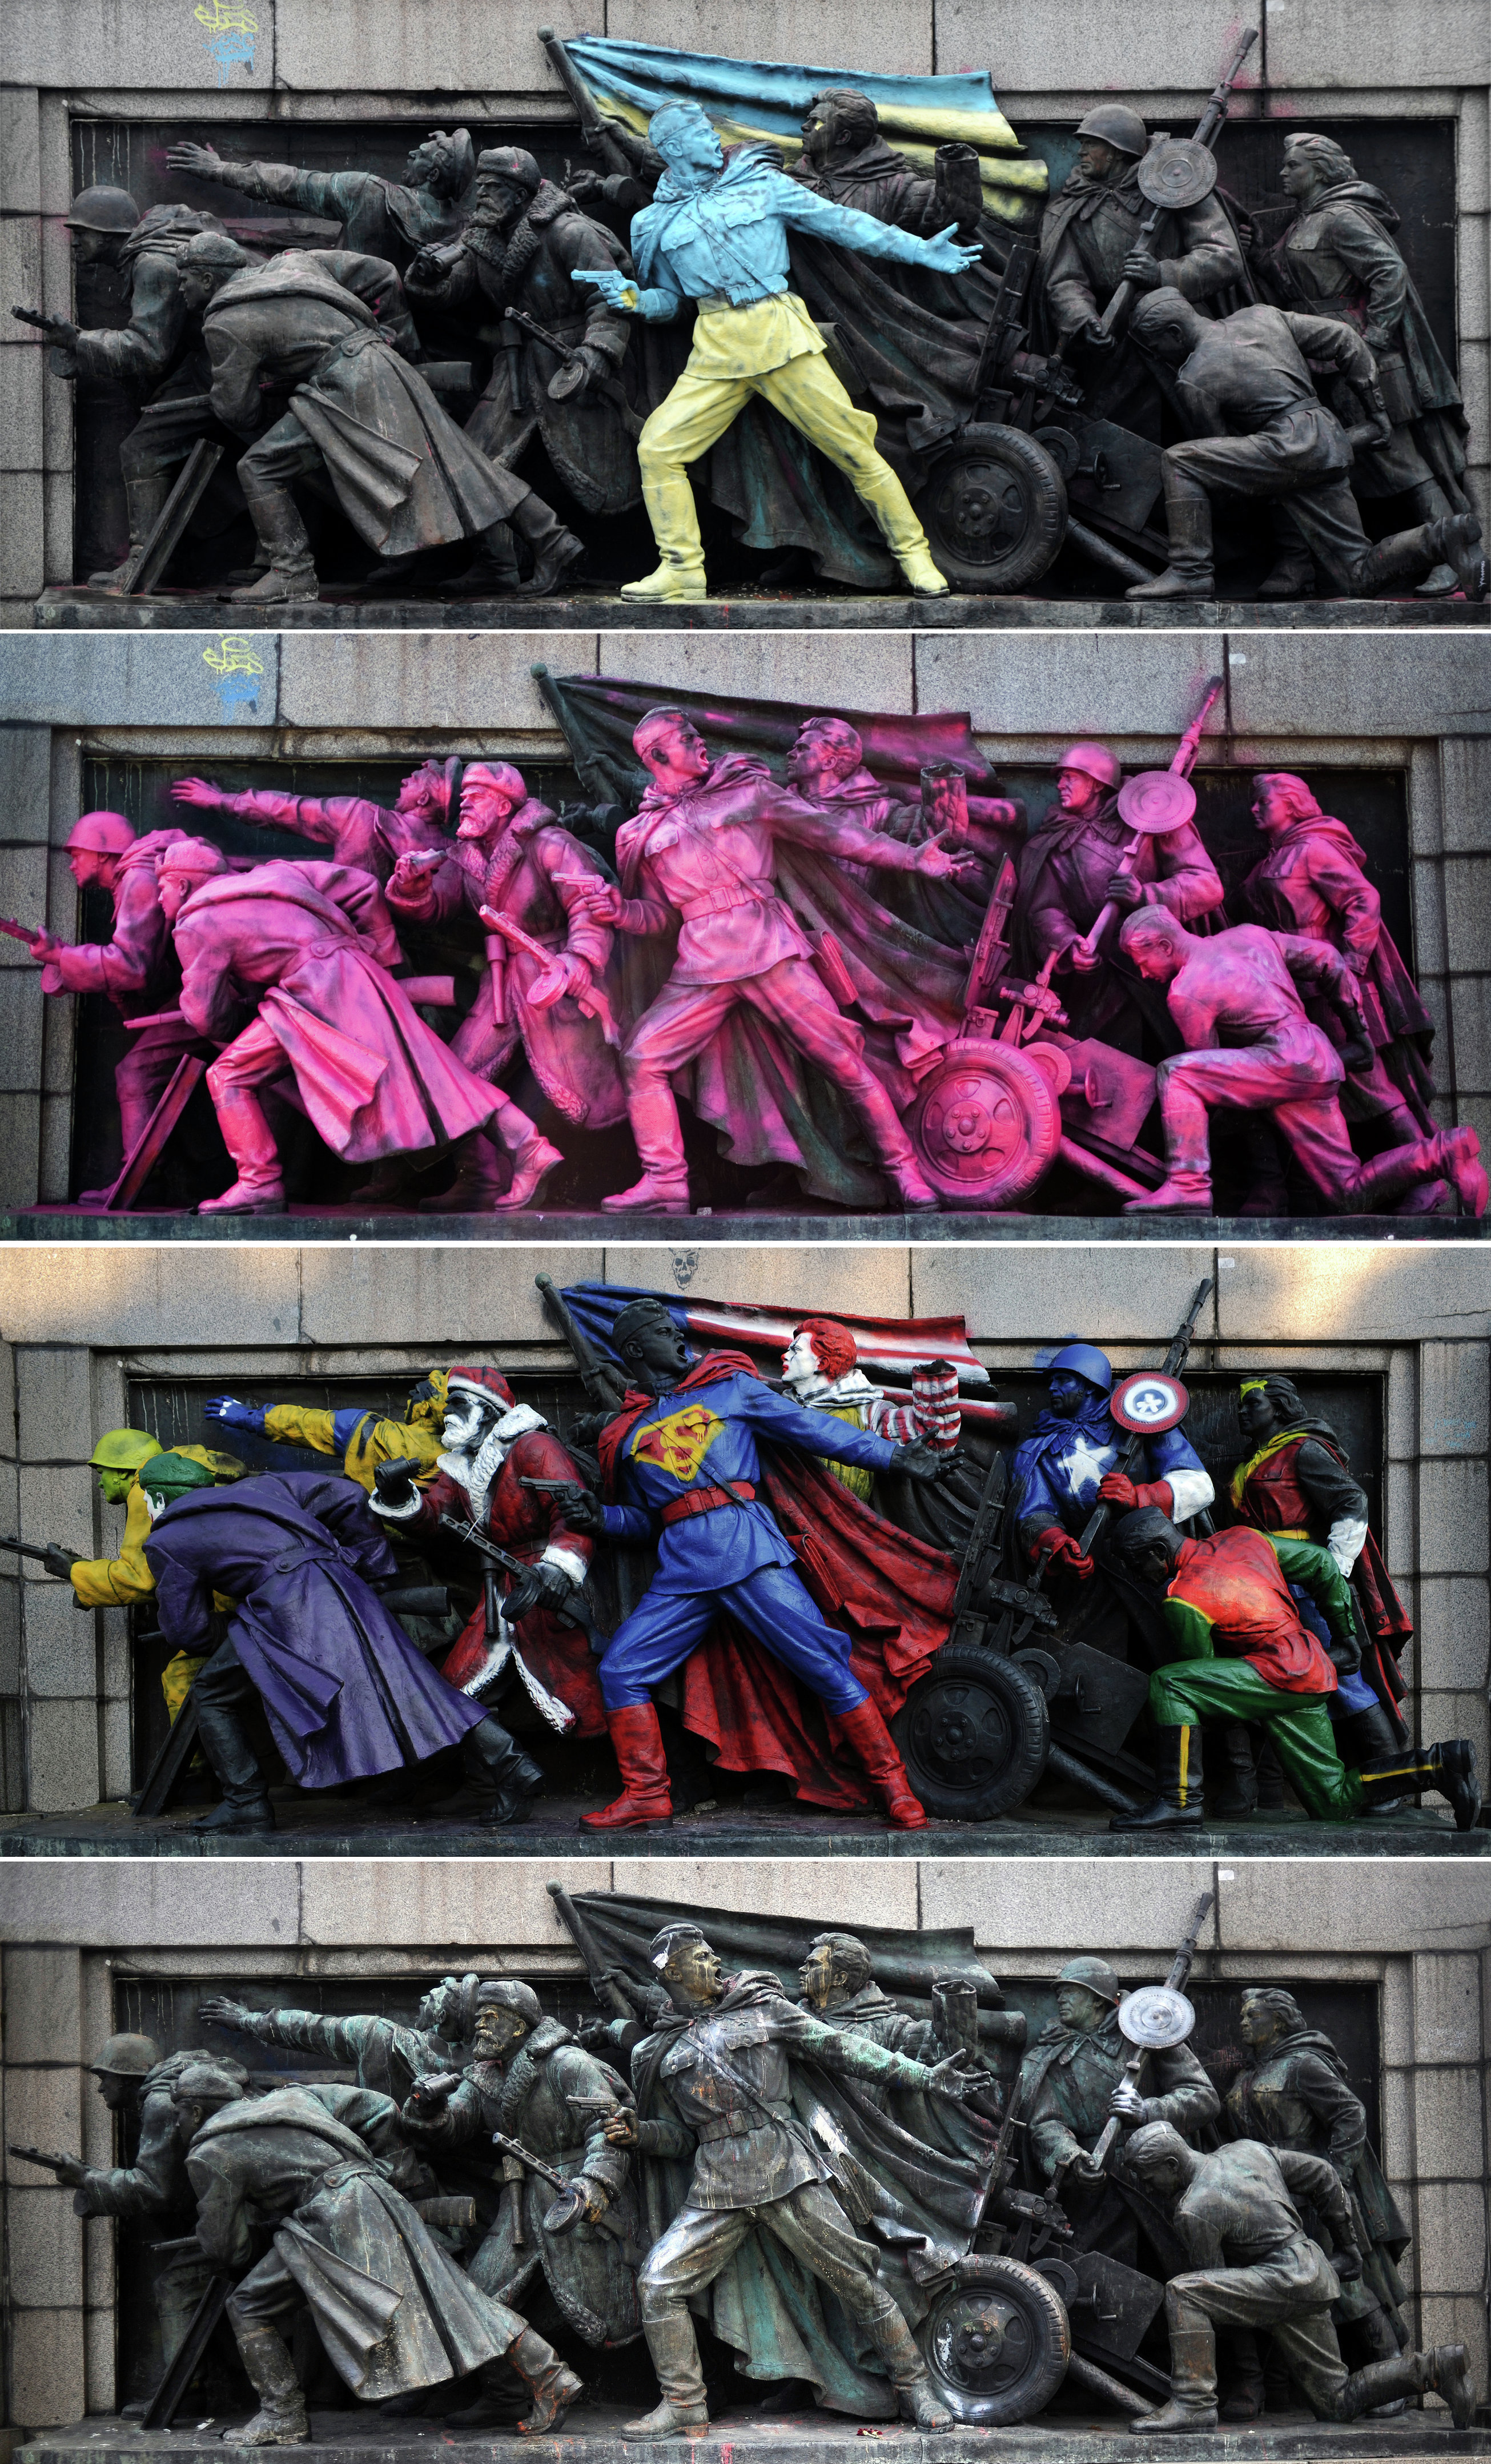 A combo picture taken in Sofia, on February 23, 2014 (top) on August 21, 2013 (second from top), on June 17, 2011 (center) and March 15, 2012 shows the figures of Soviet soldiers at the base of the Soviet Army monument, painted by an unknown artist and the same monument after it was cleaned